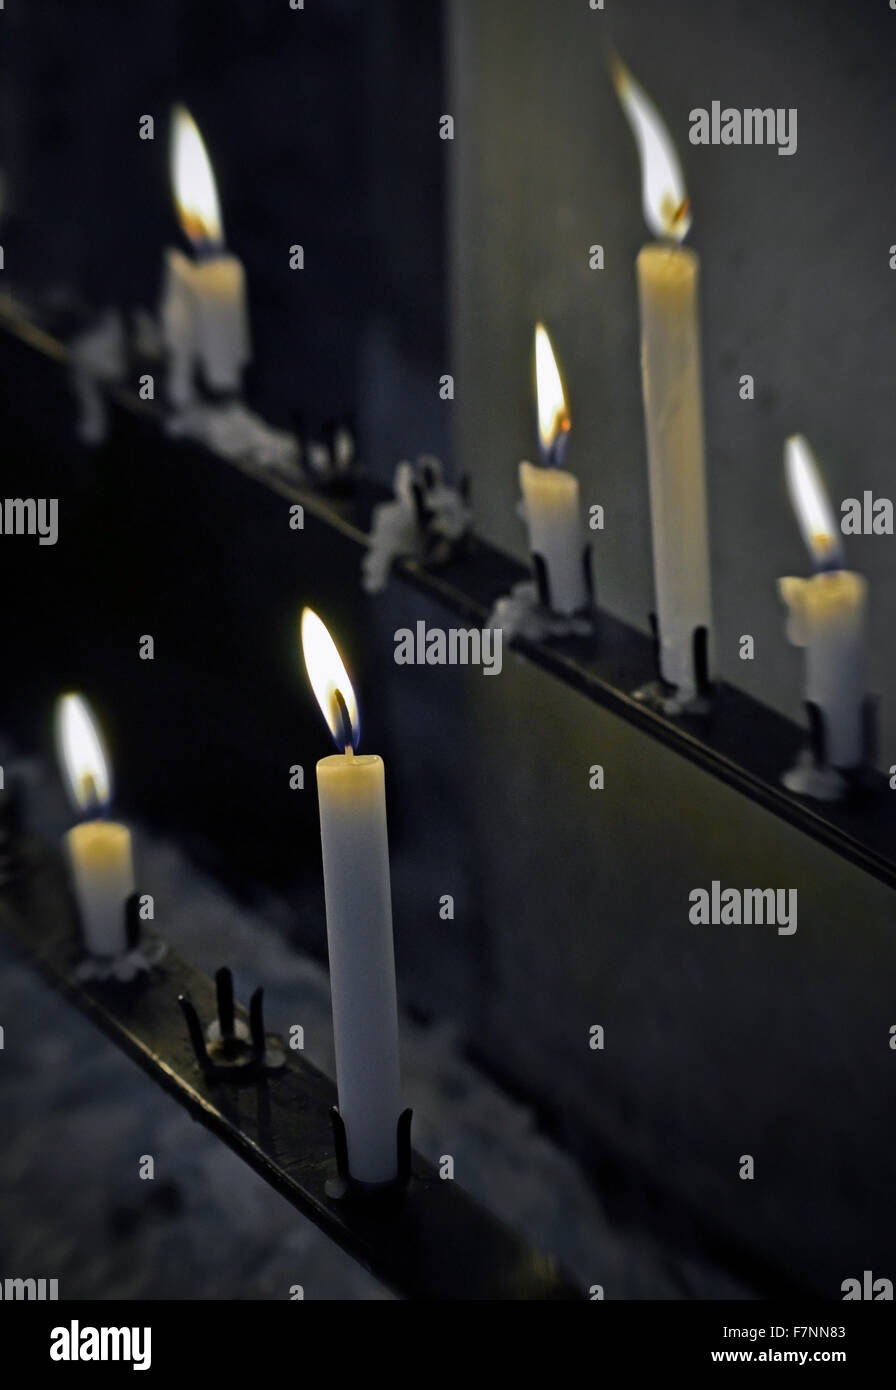 church candles burning - Stock Image